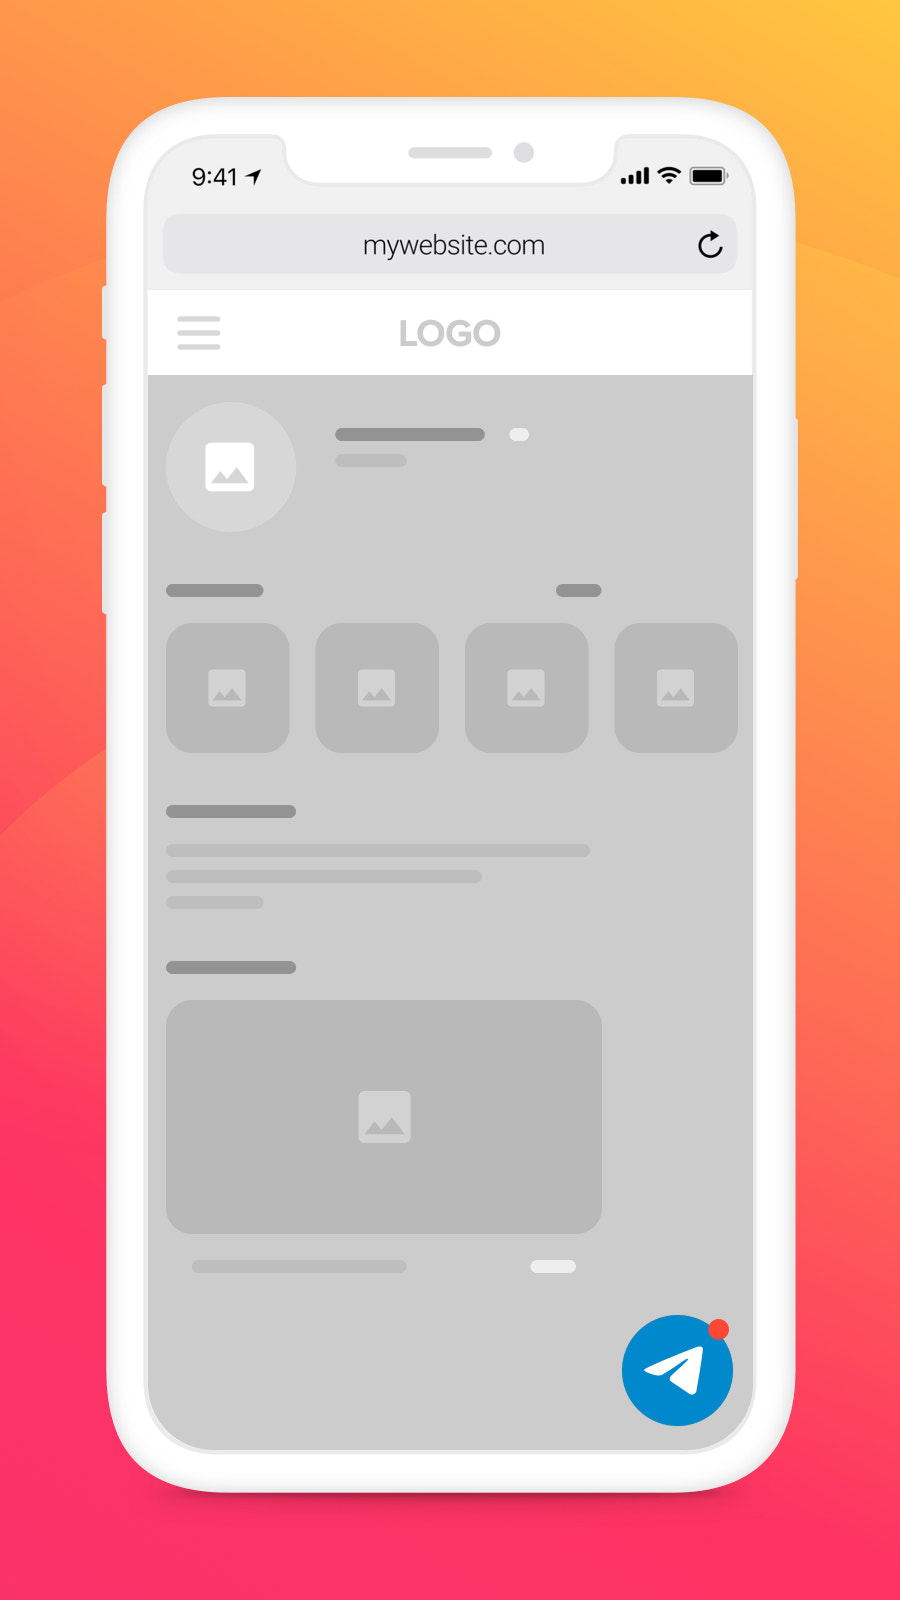 Smooth work on any device with mobile optimization